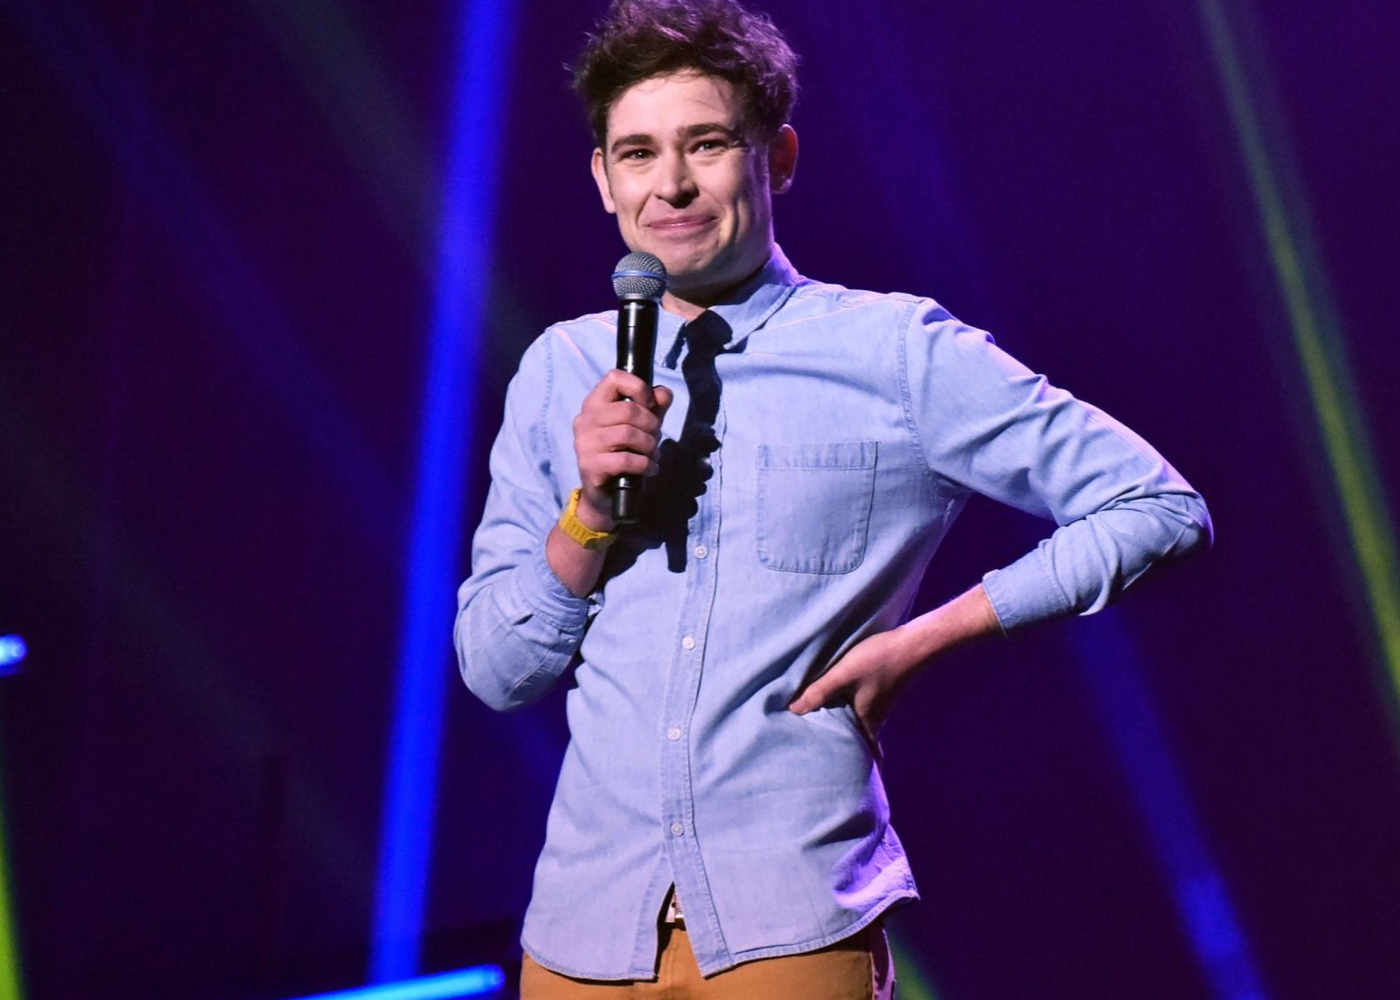 Brennan Reece will be dishing out the laughs live. Photography: Melbourne International Comedy Festival